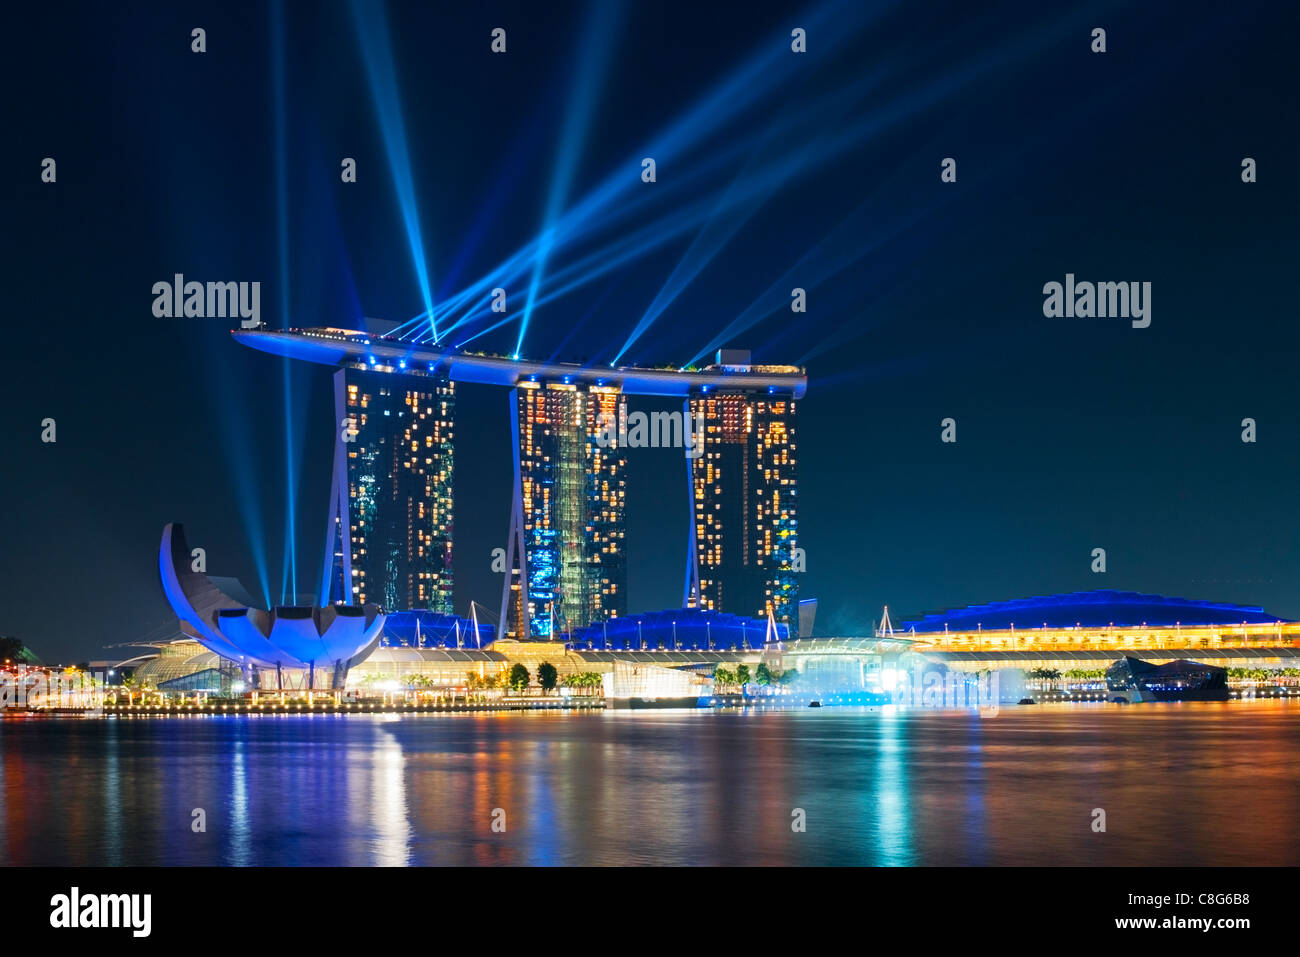 Nightly light and water show, 'Wonder Full', with lasers at the Marina Bay Sands Hotel, Singapore - Stock Image